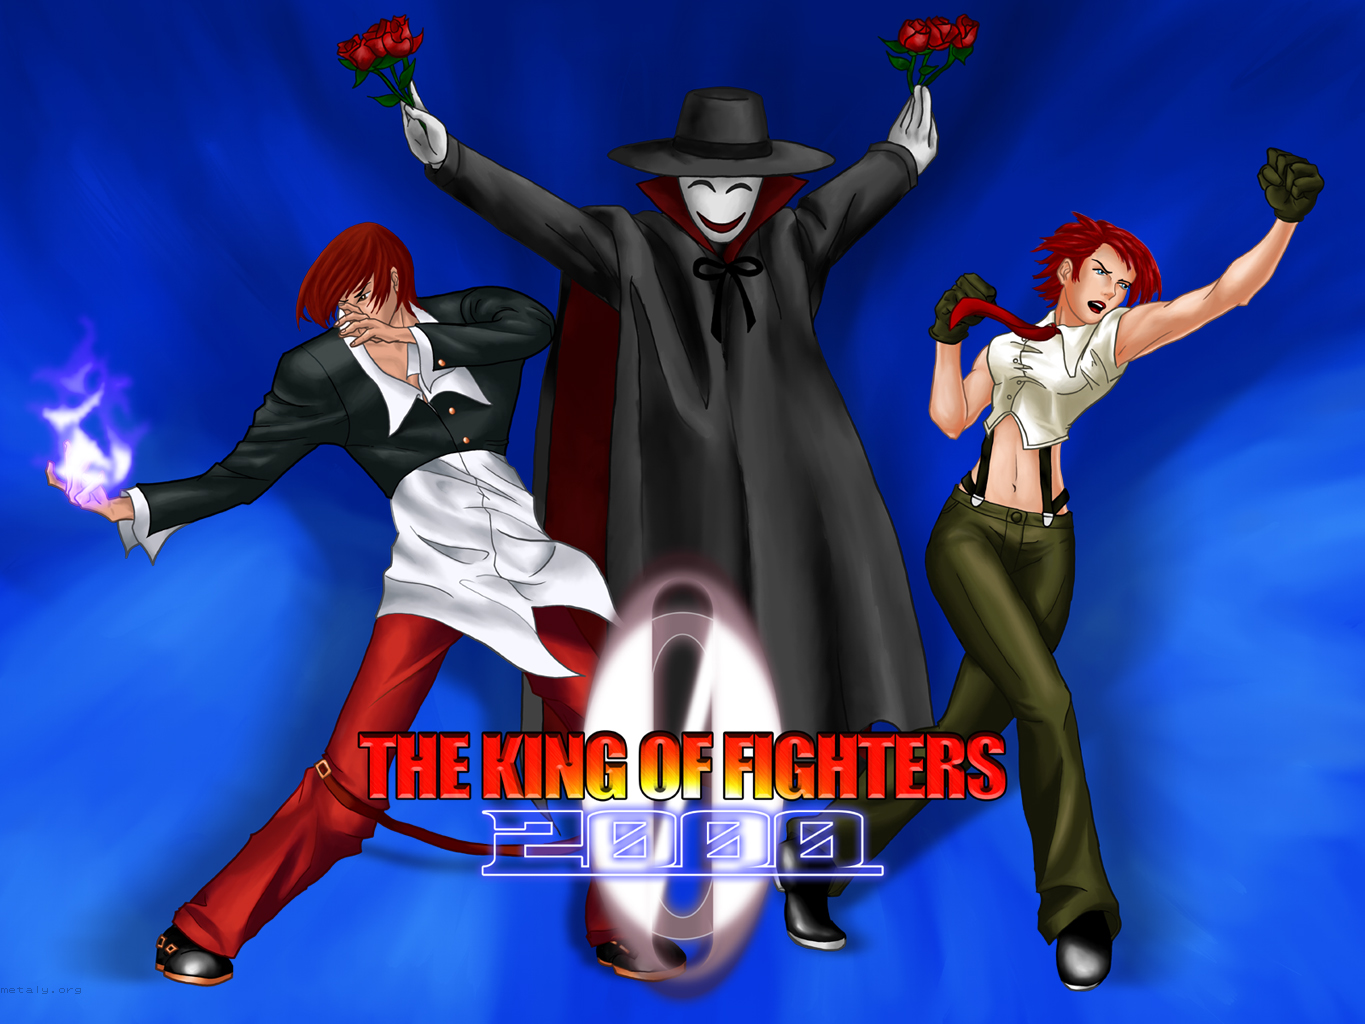 The King Of Fighters 2000 Metaly Fled